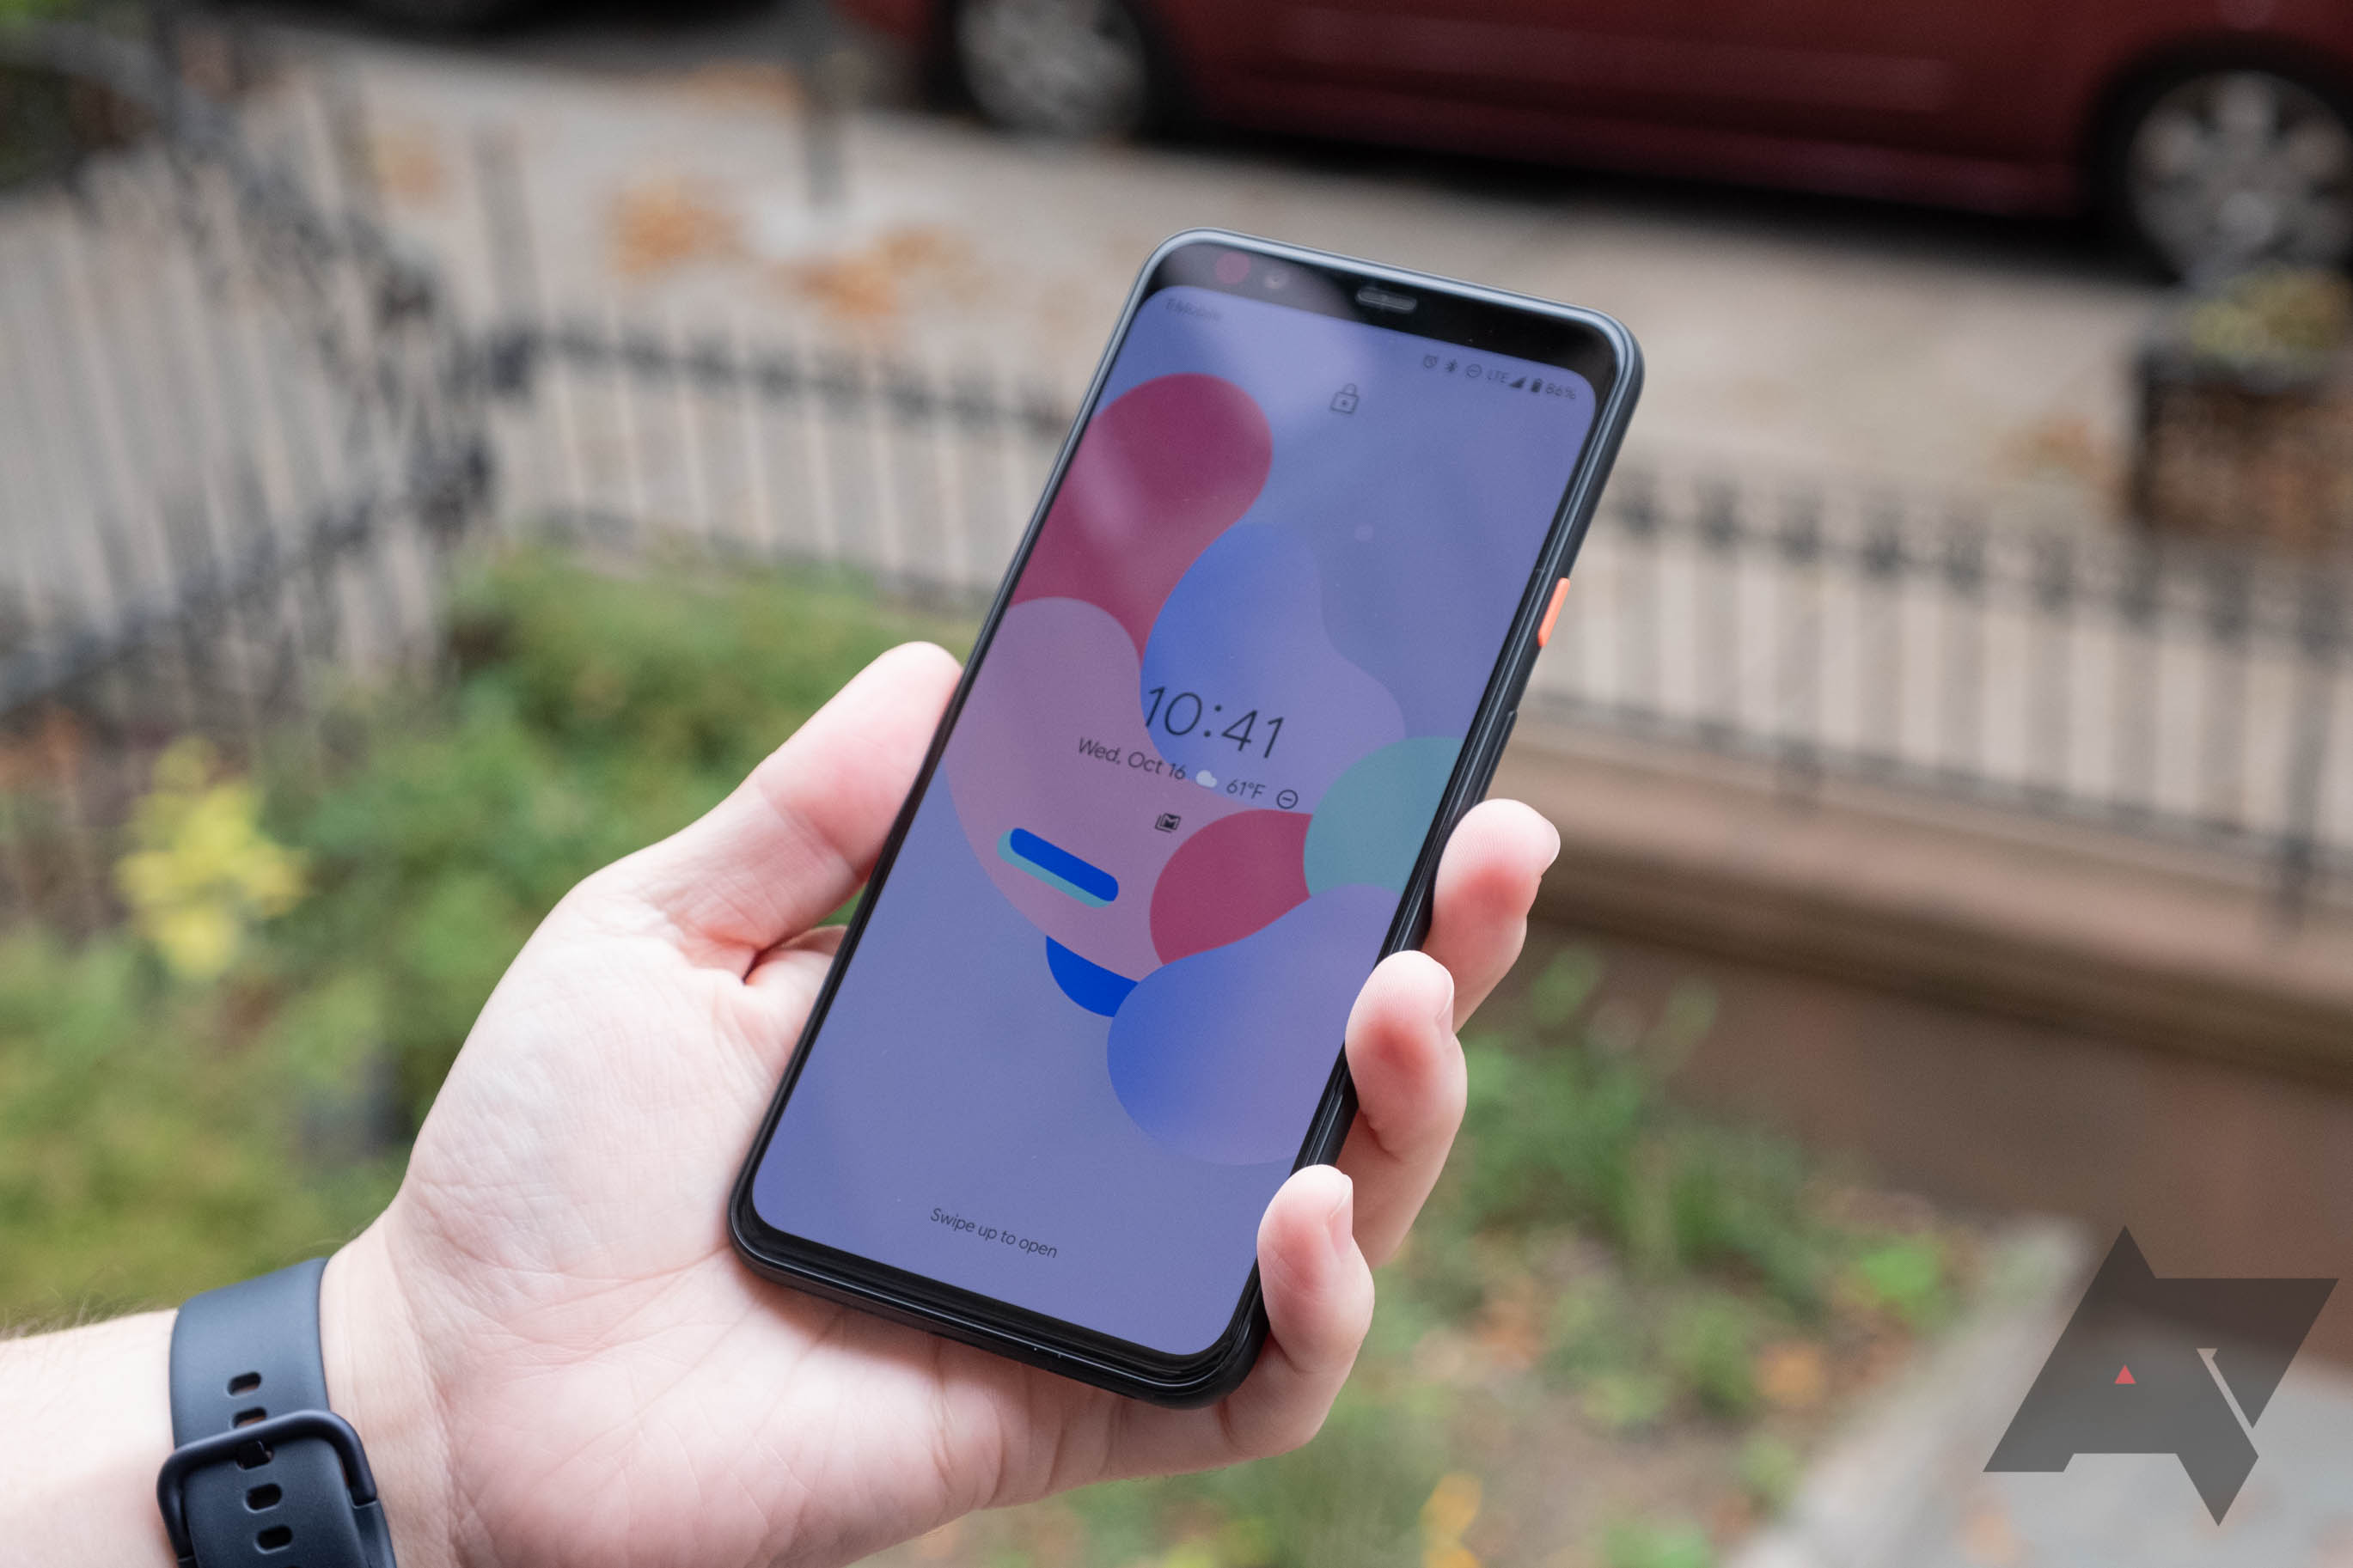 The Pixel 4 hides lock screen notifications, but you can re-enable them